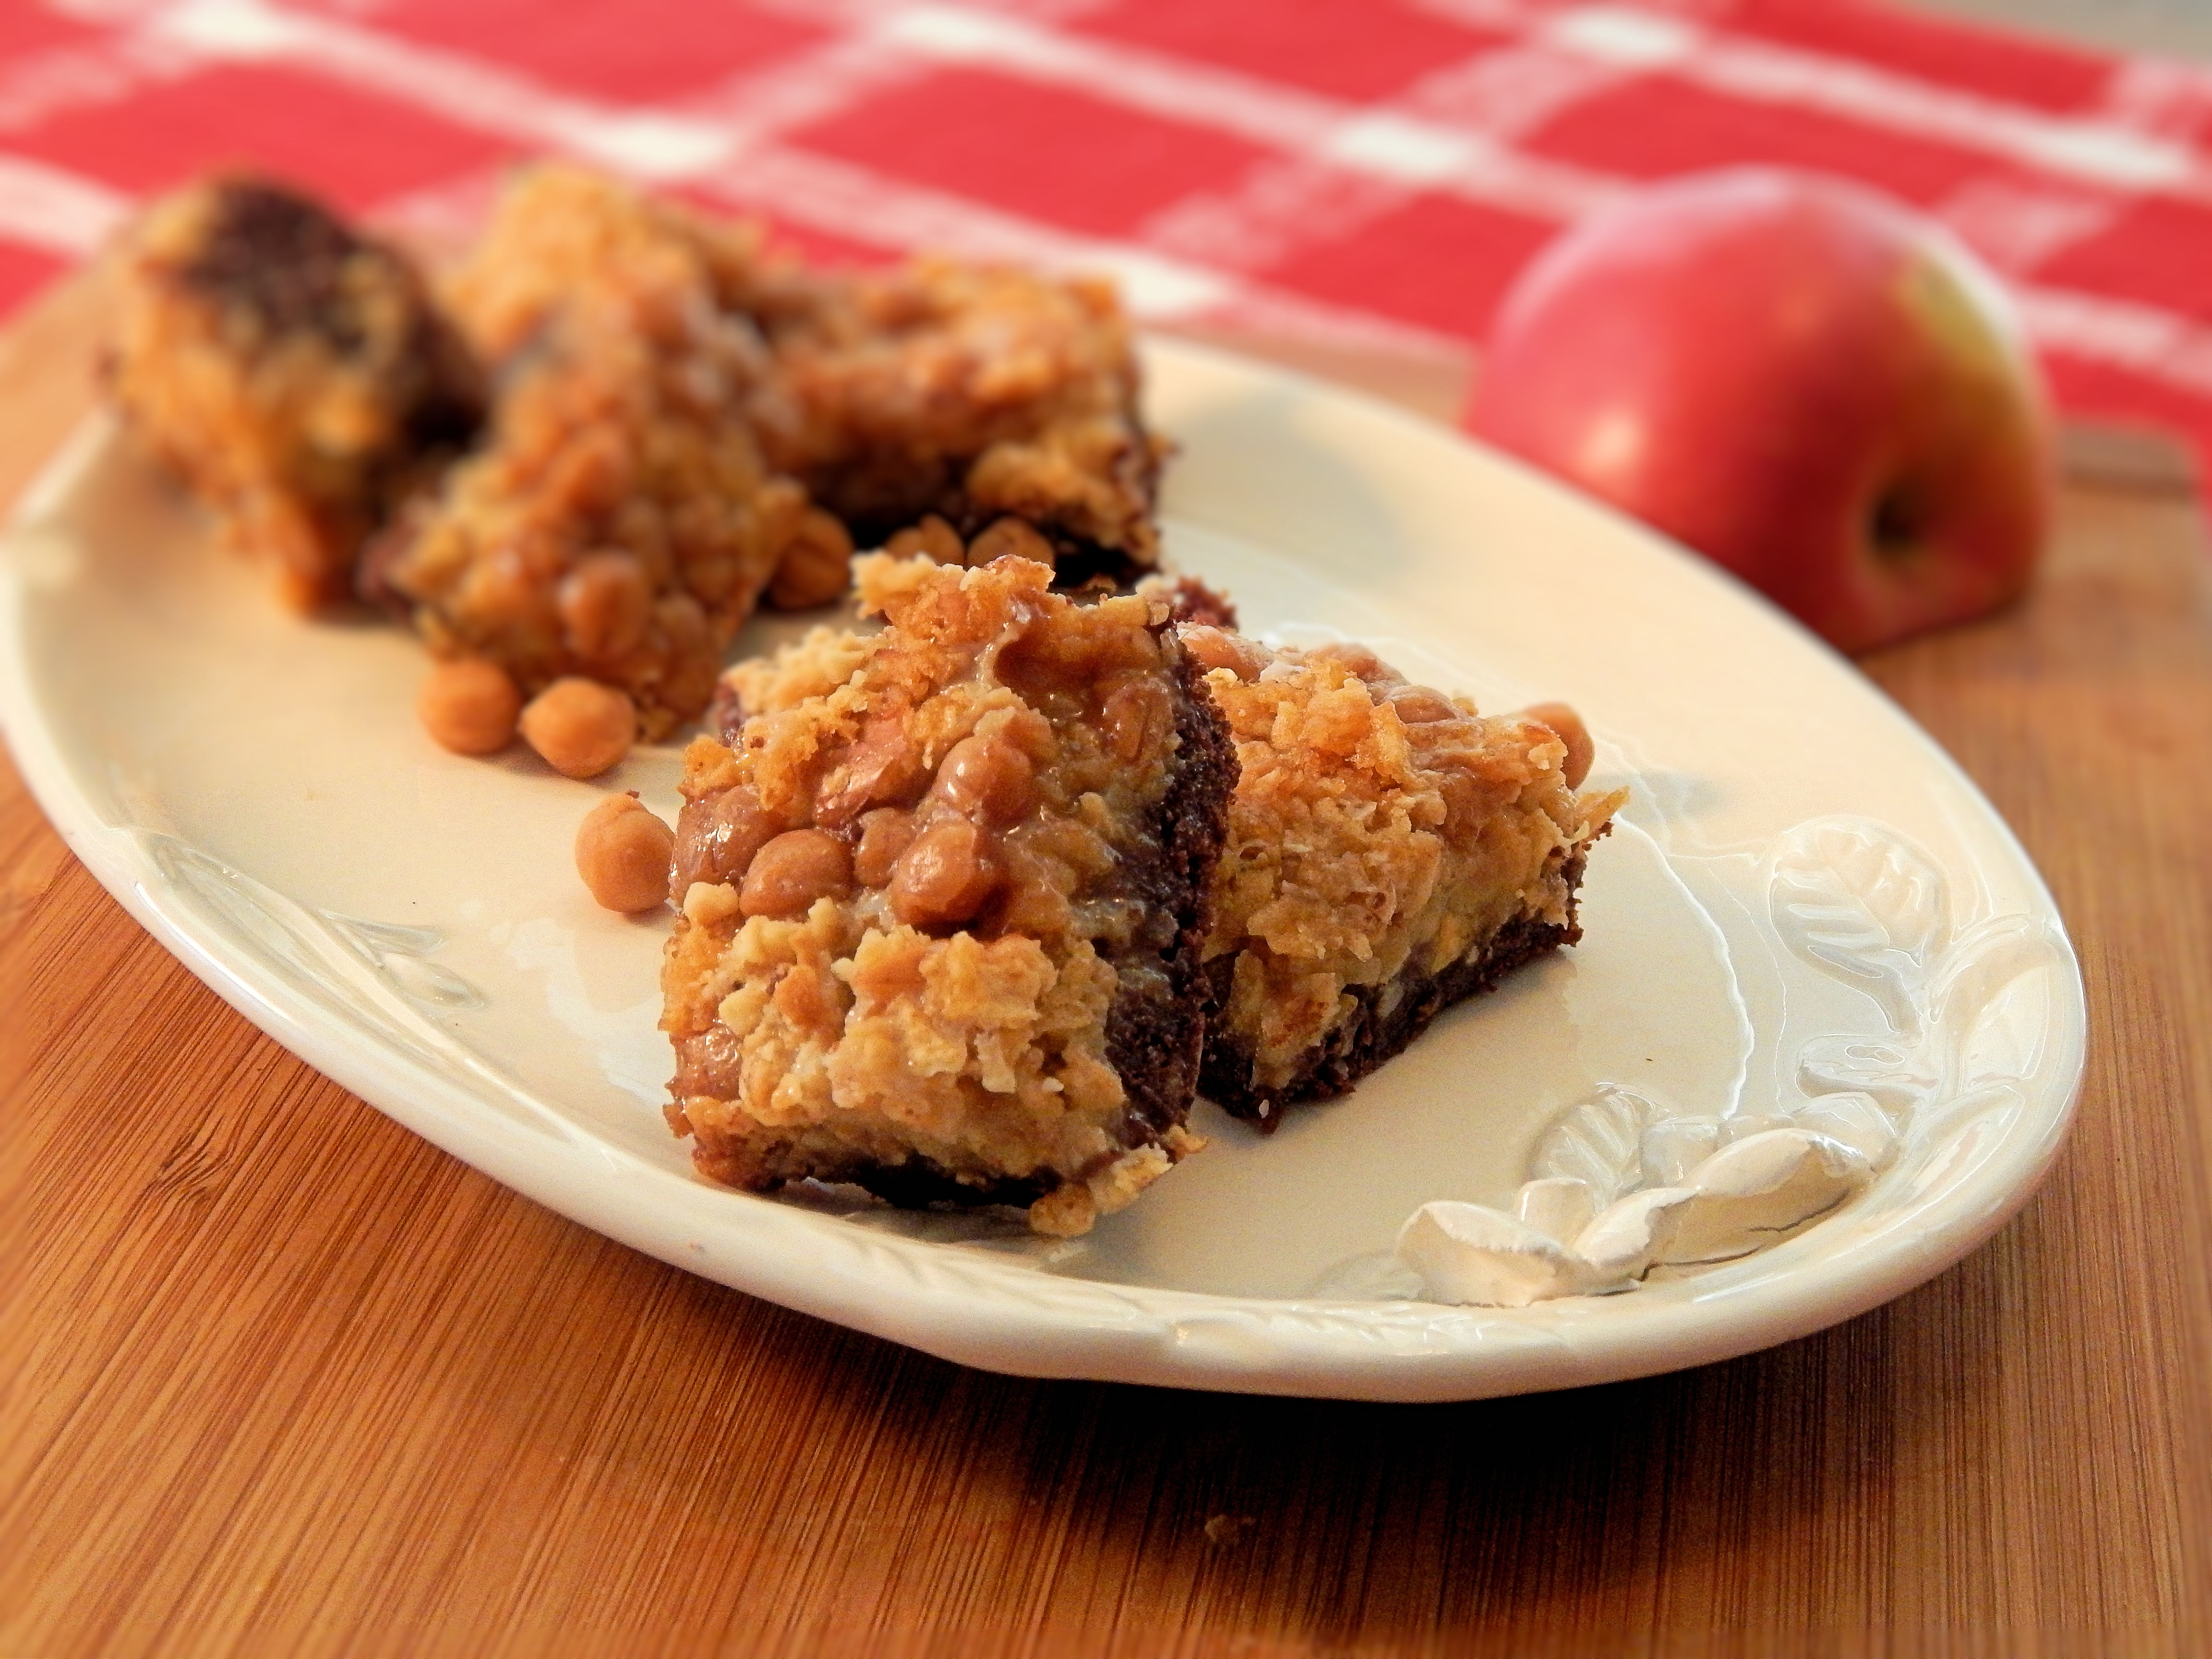 Salted Cashew and Caramel Apple Magic Cookie Bars